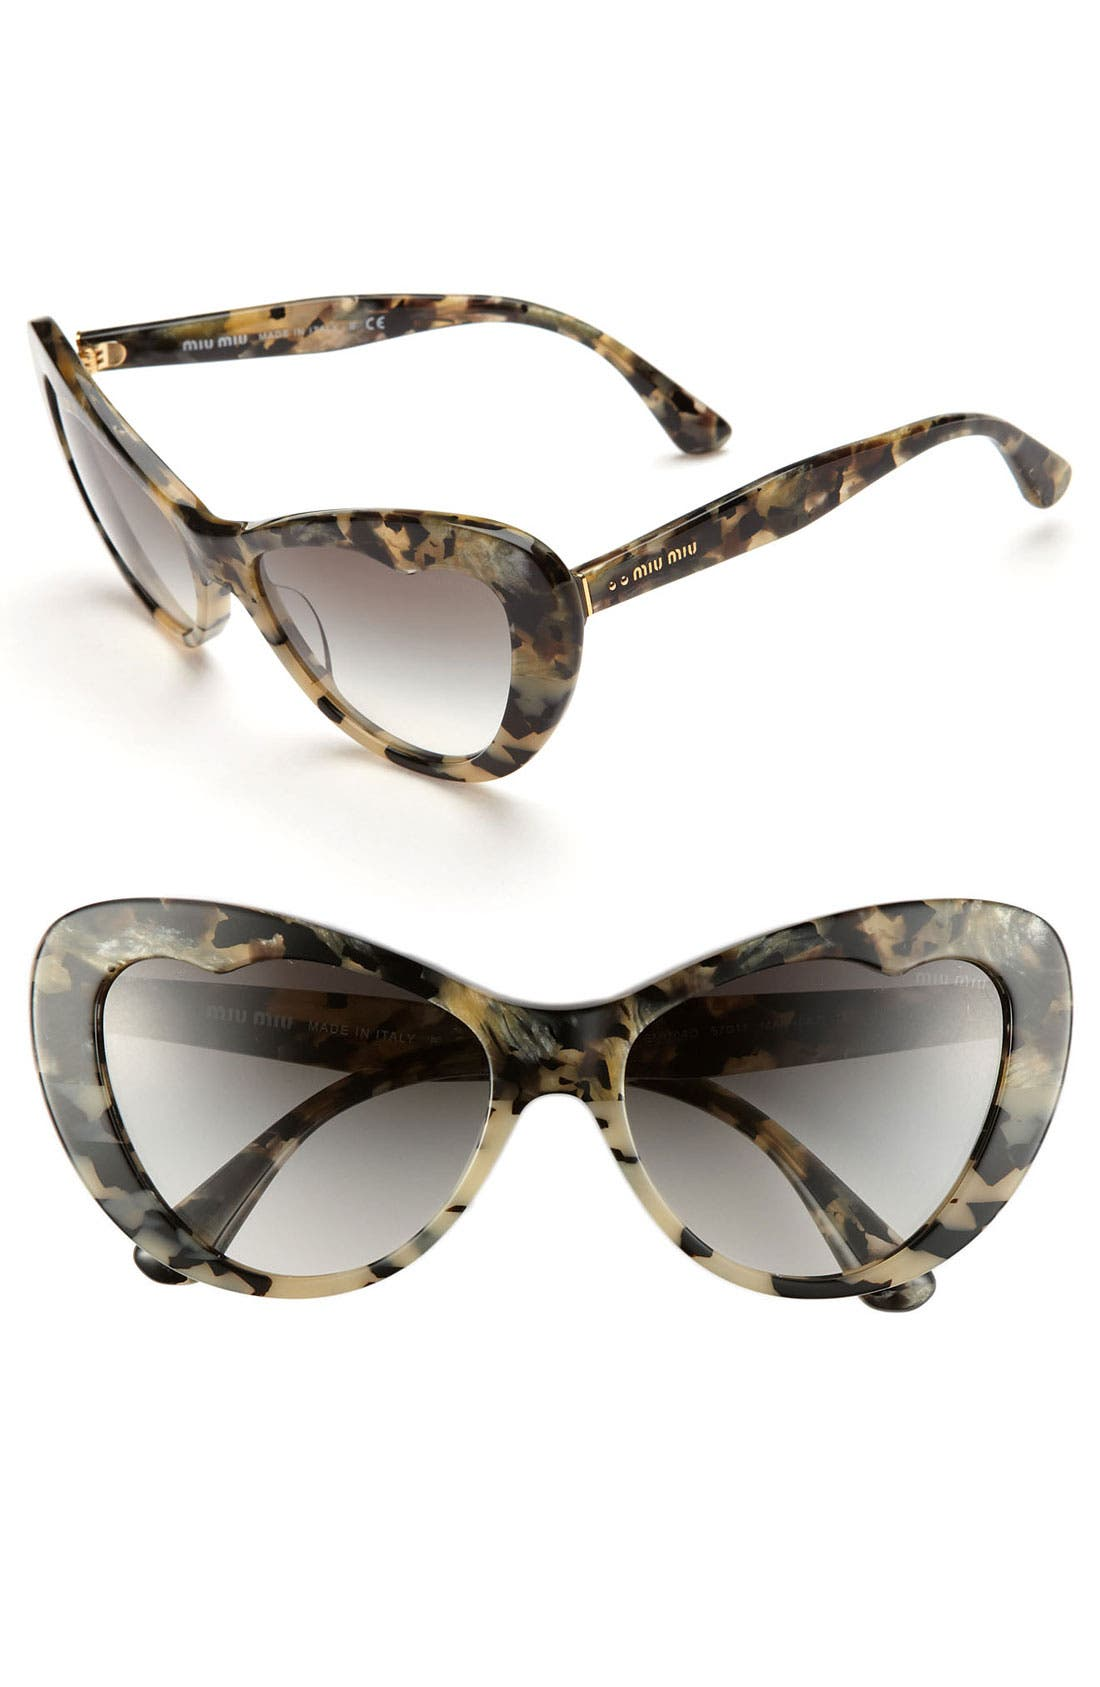 Main Image - Miu Miu 57mm Cat Eye Sunglasses